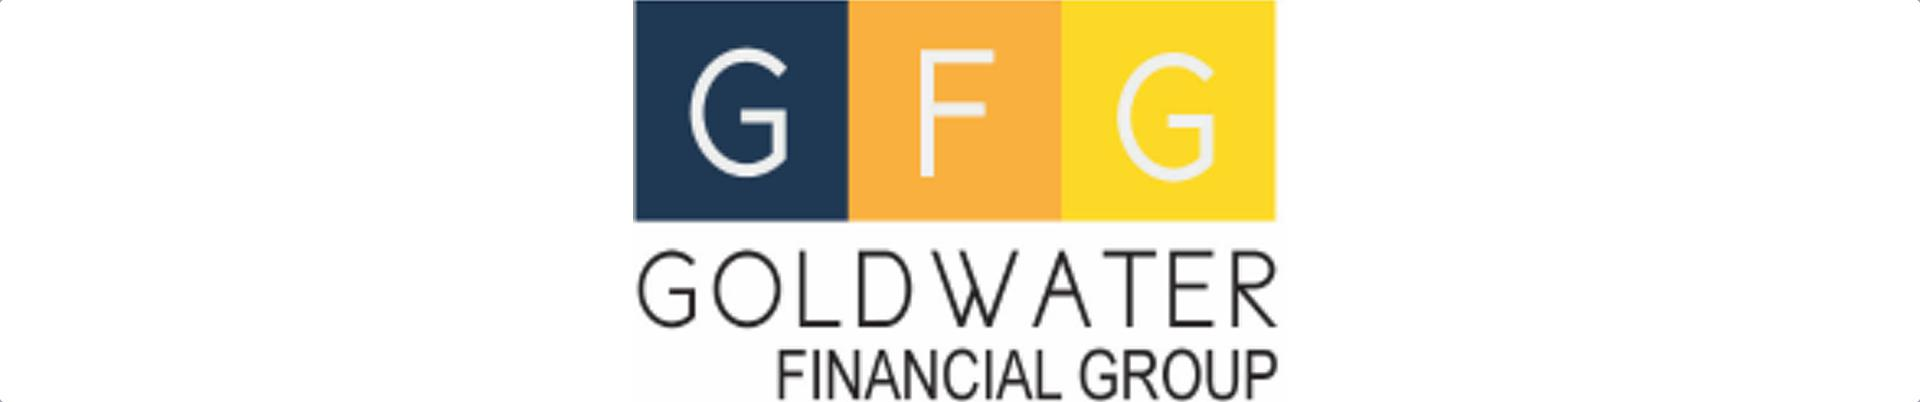 Goldwater Financial Group